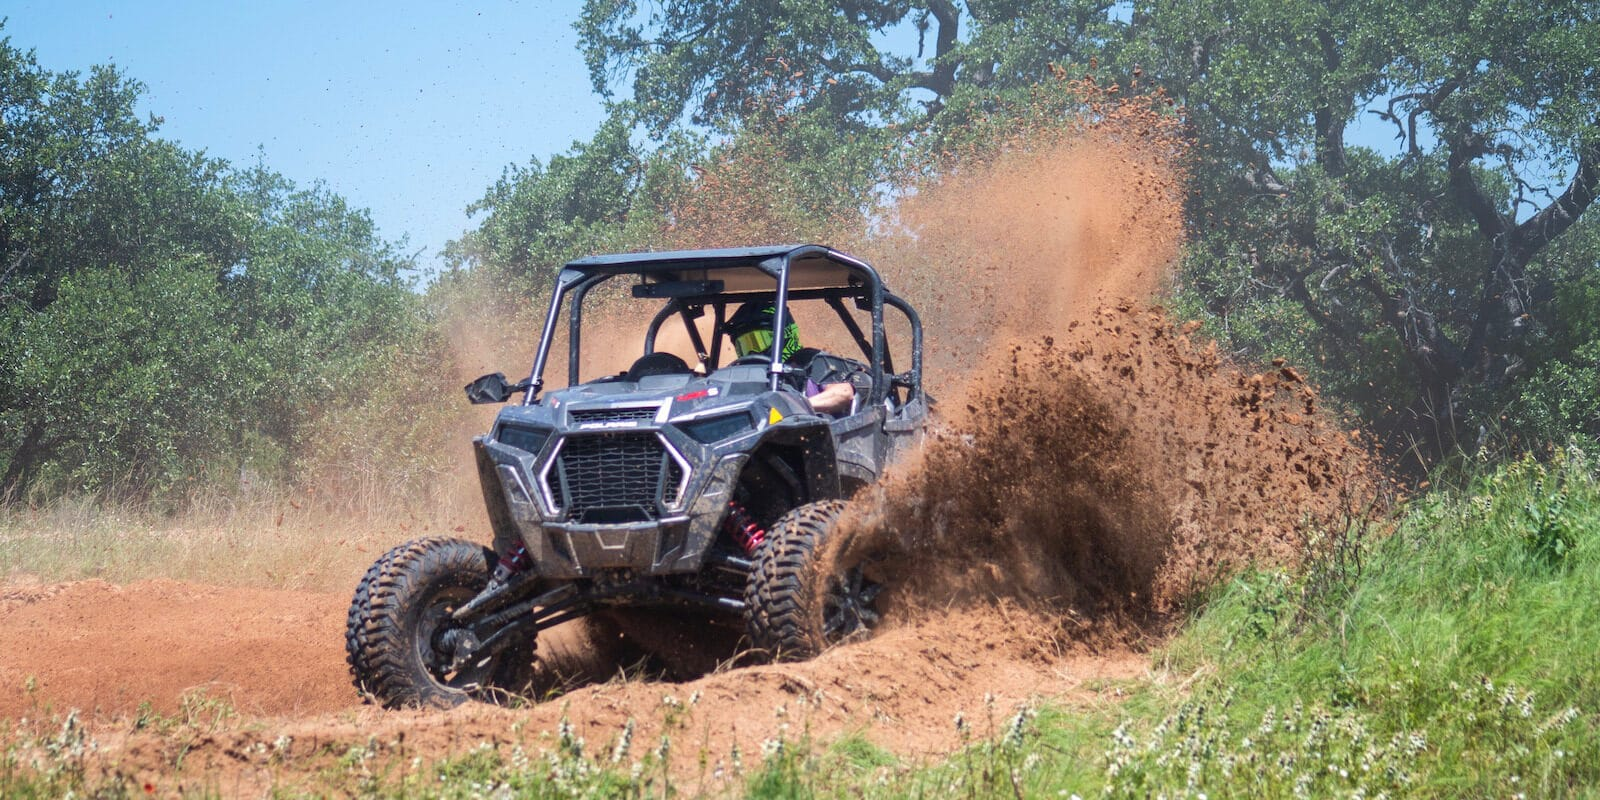 Image of a Polaris RZR from San Juan side by Sides in Pagosa Springs, Colorado